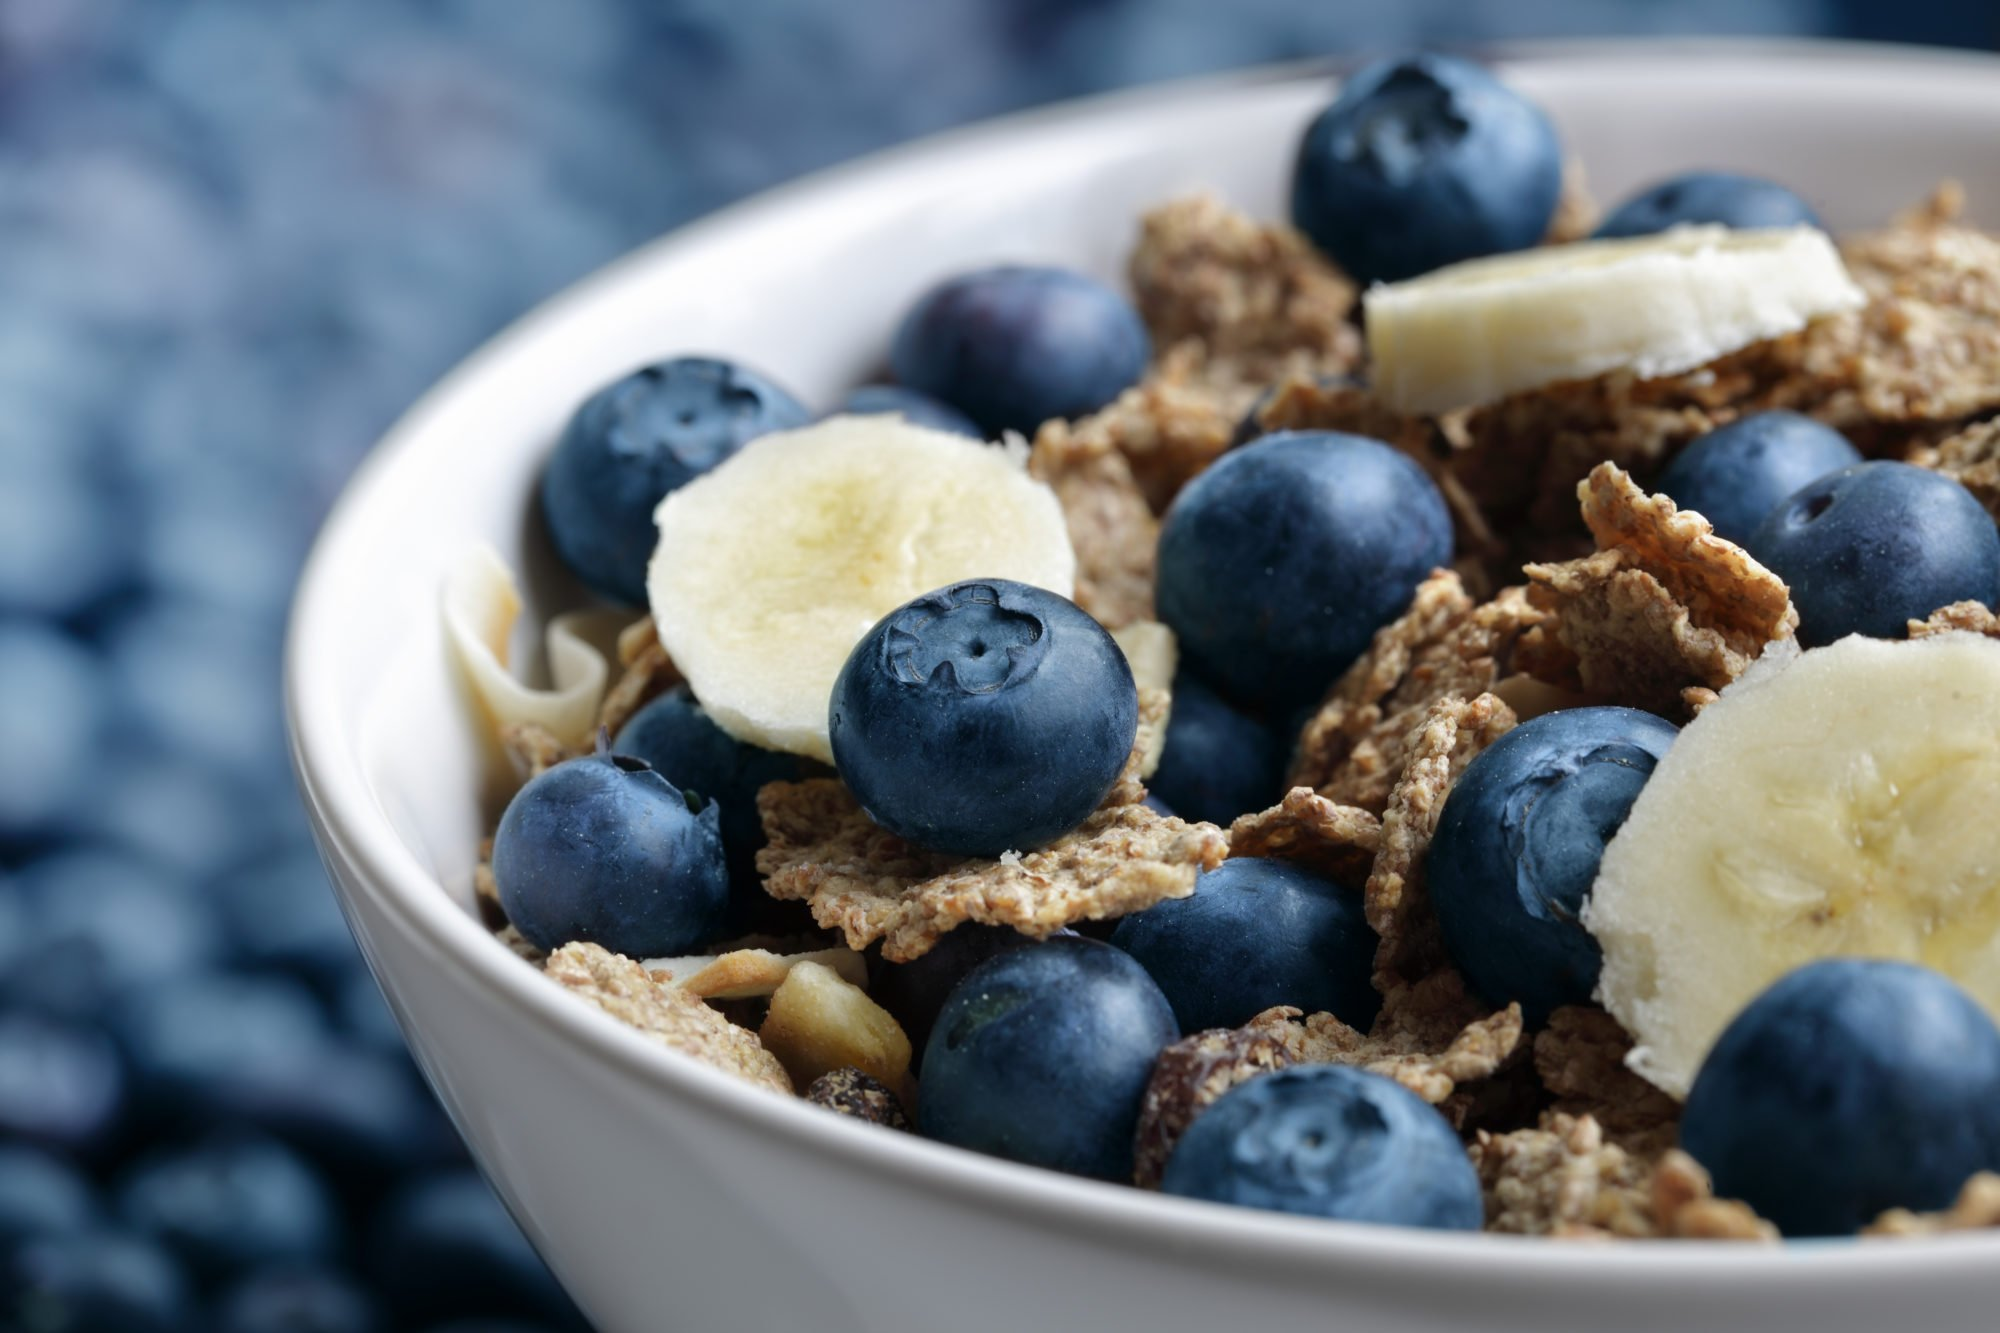 Could including fiber in your diet help you lose weight?